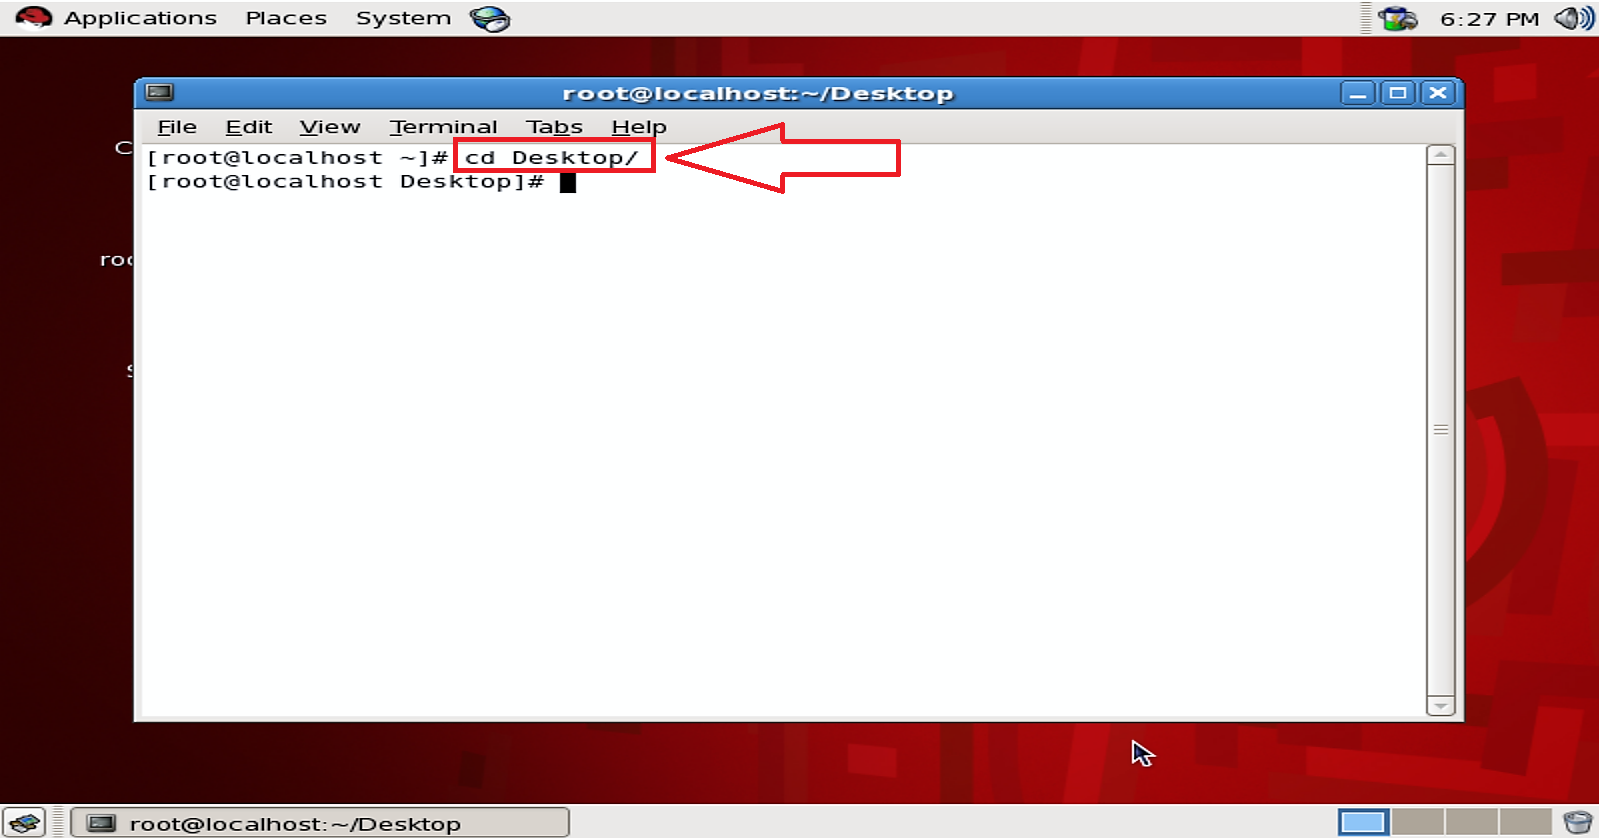 How to open Red Hat Enterprise Linux 5 iso file and Removed